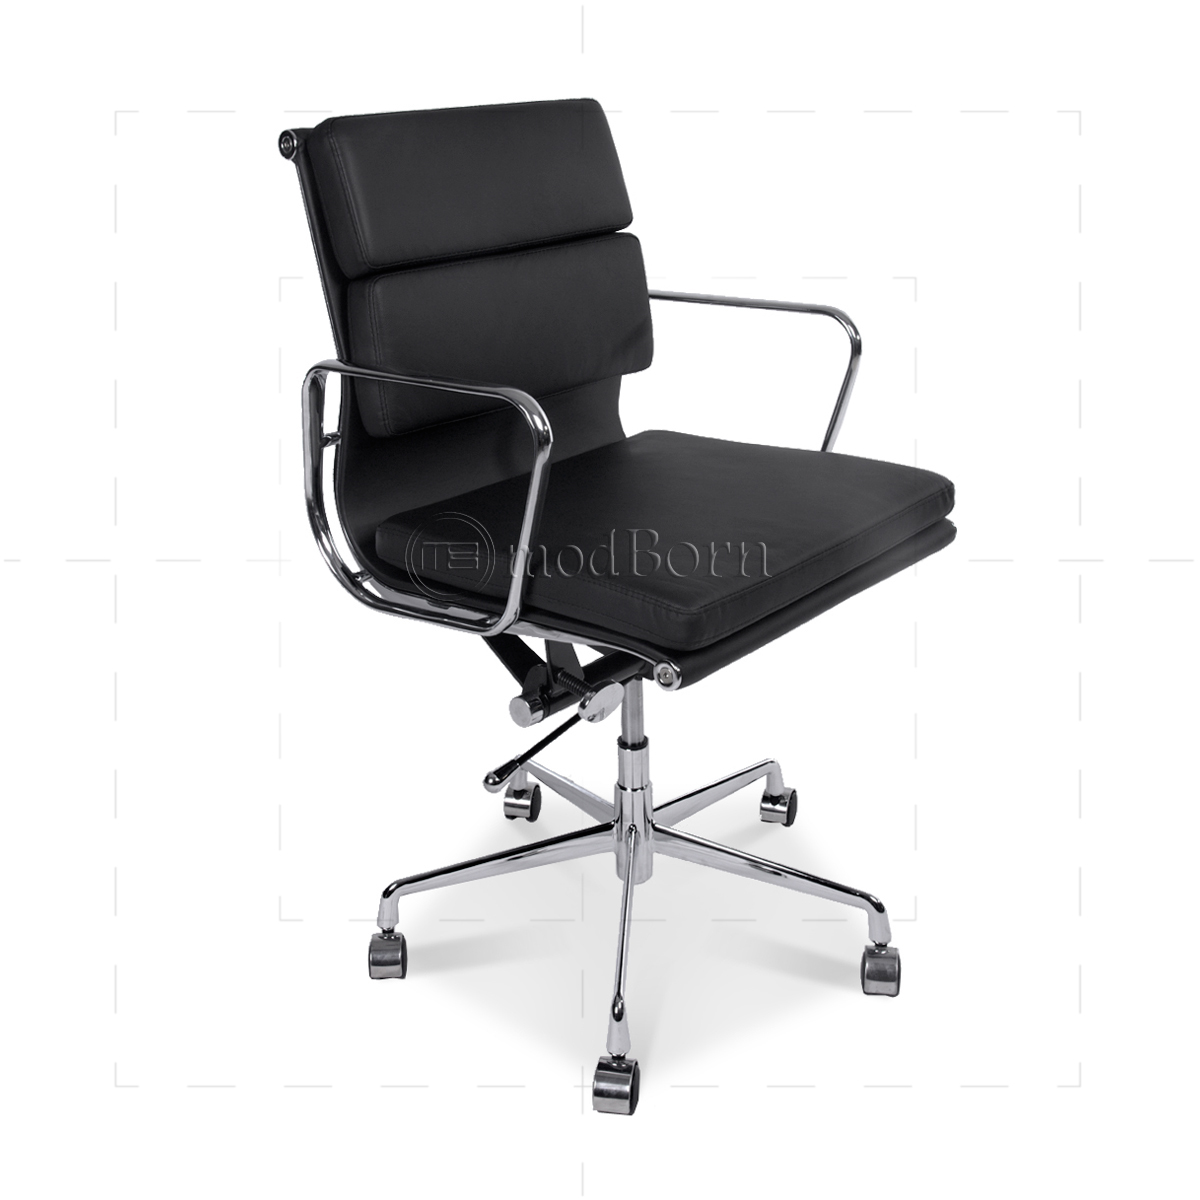 ea217 eames style office chair low back soft pad black leather. Black Bedroom Furniture Sets. Home Design Ideas